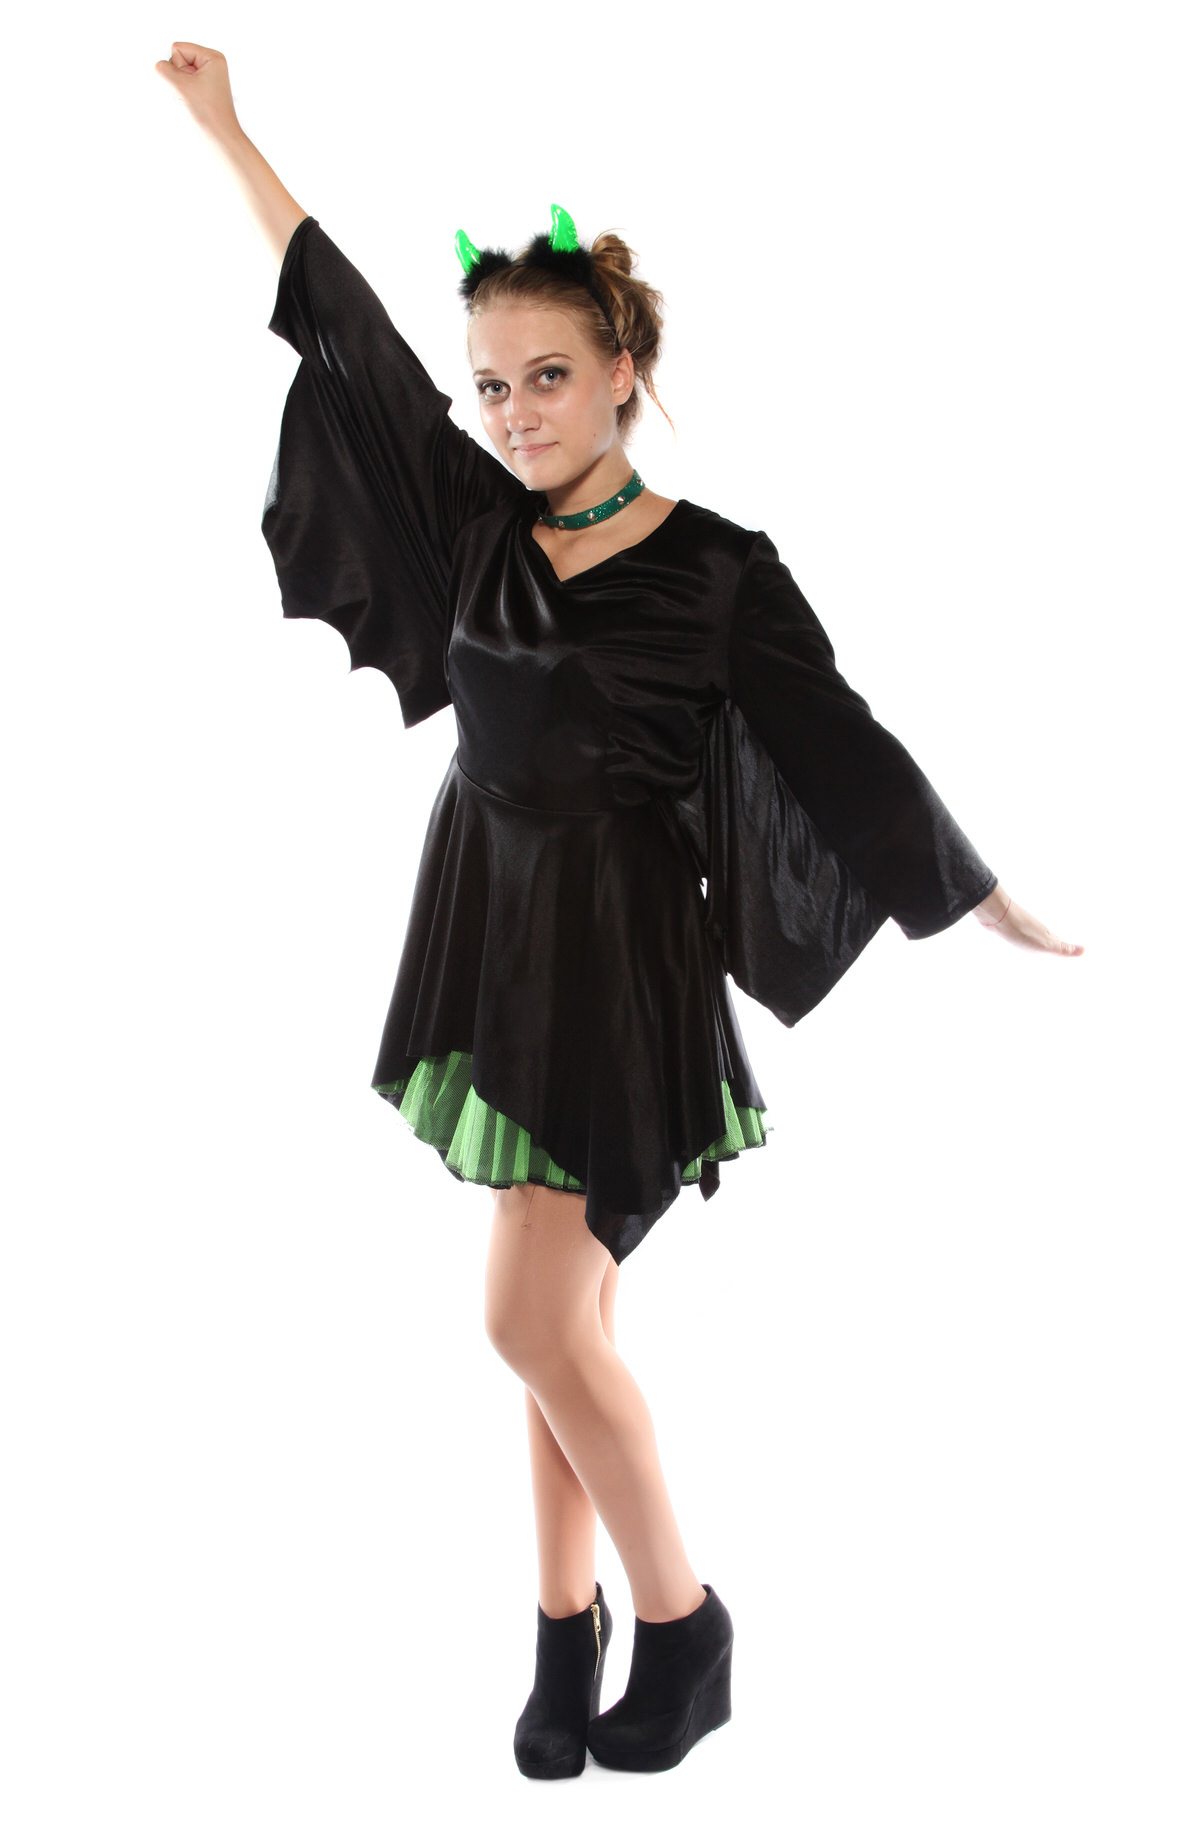 PUNKY GREEN AND BLACK BAT DRESS COSTUME